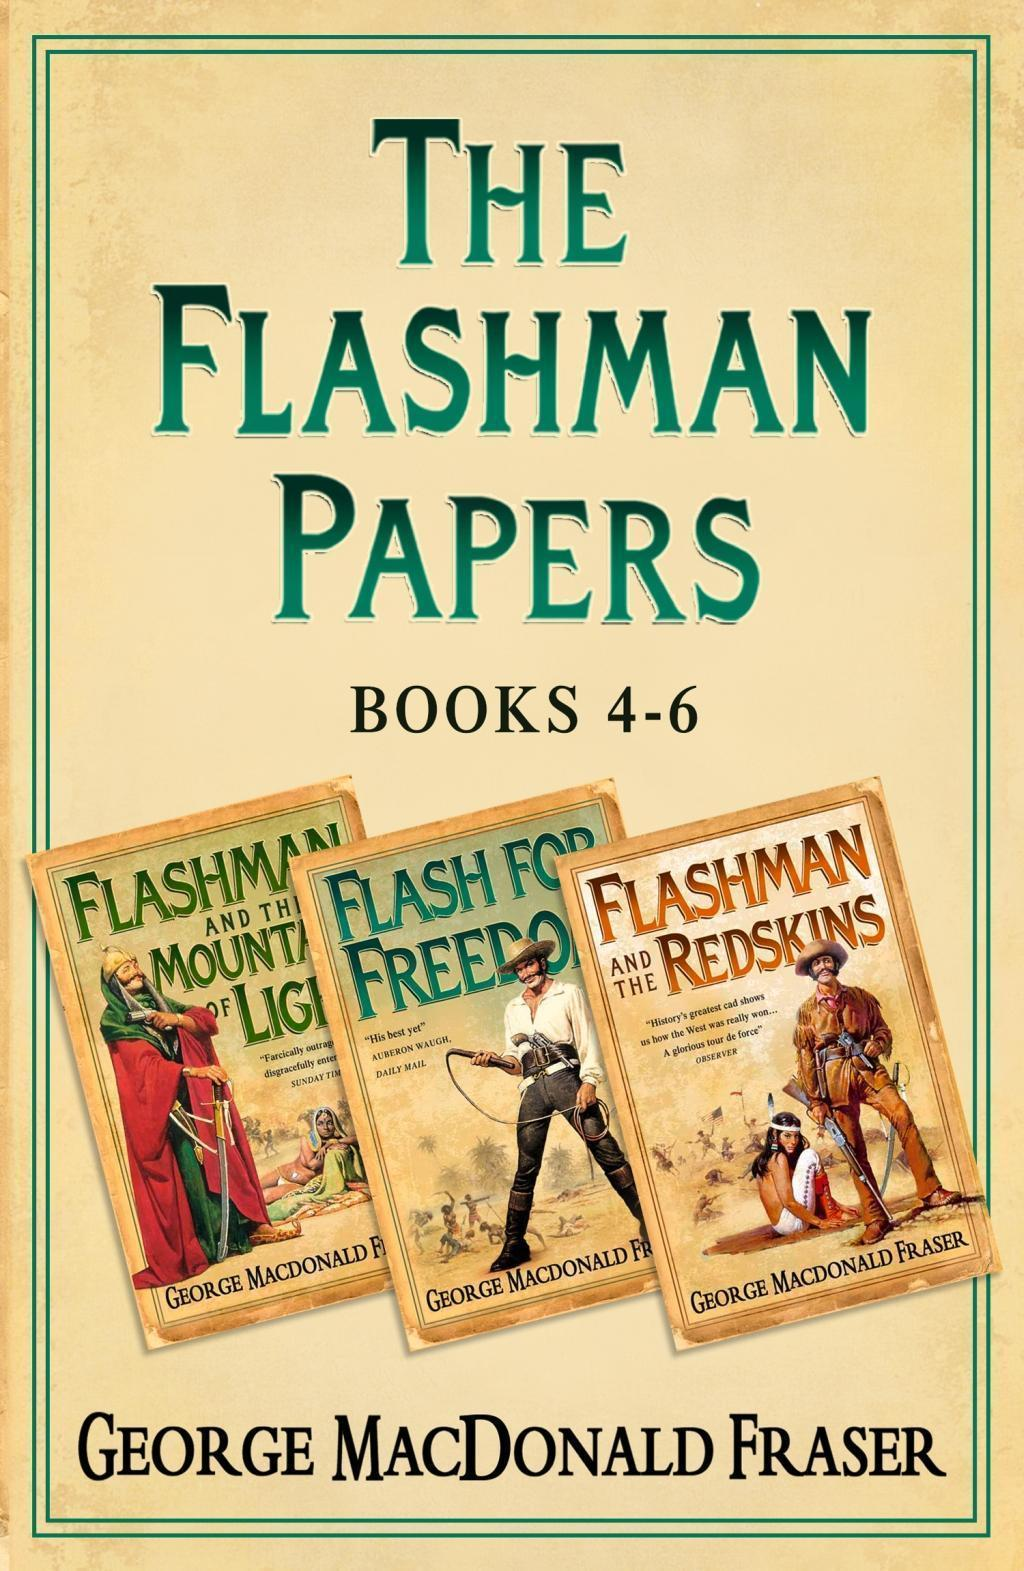 Flashman Papers 3-Book Collection 2: Flashman and the Mountain of Light, Flash For Freedom!, Flashman and the Redskins